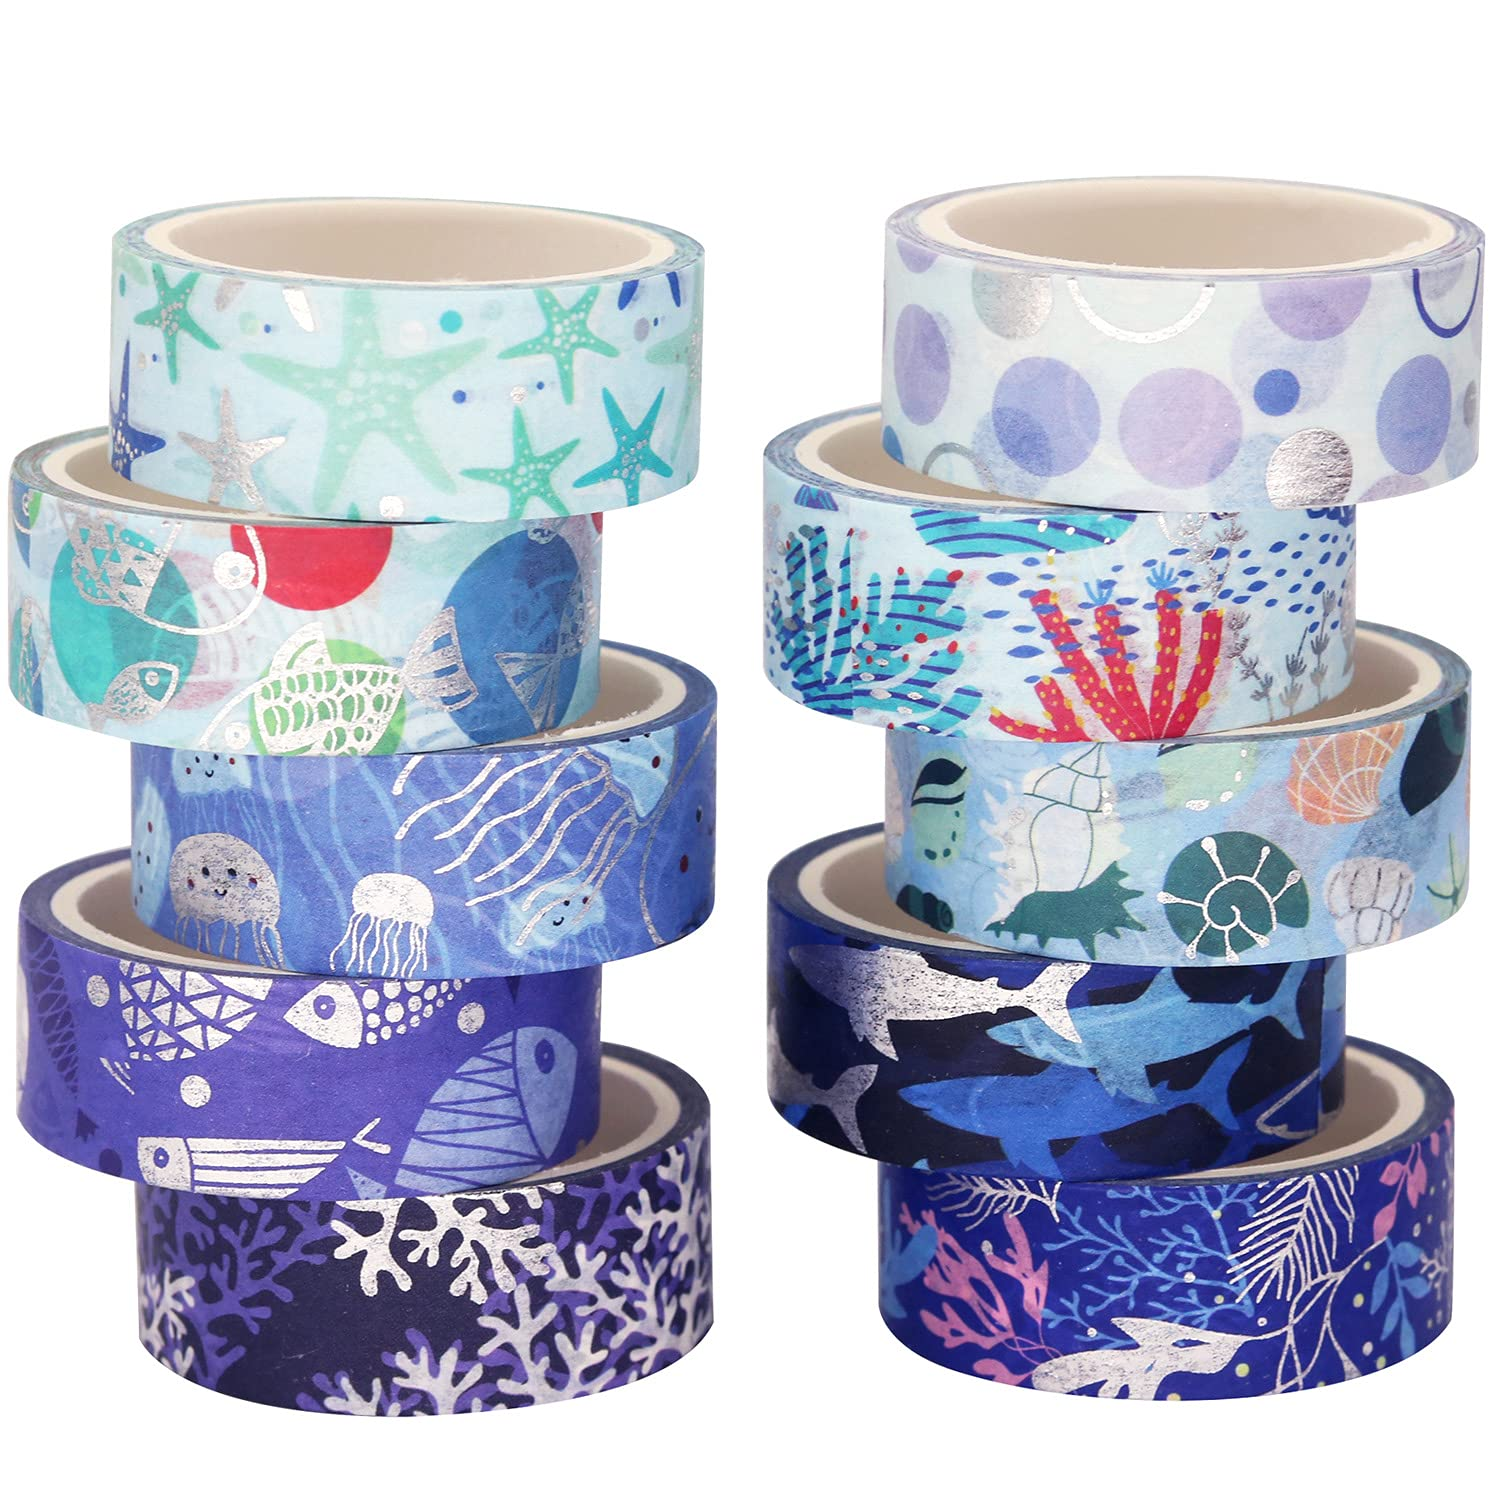 YUBX Ocean Blue Washi Tape Set 10 Rolls Silver Foil Print Decorative Masking Tapes for Arts, DIY Crafts, Bullet Journals, Planners, Scrapbook, Wrapping